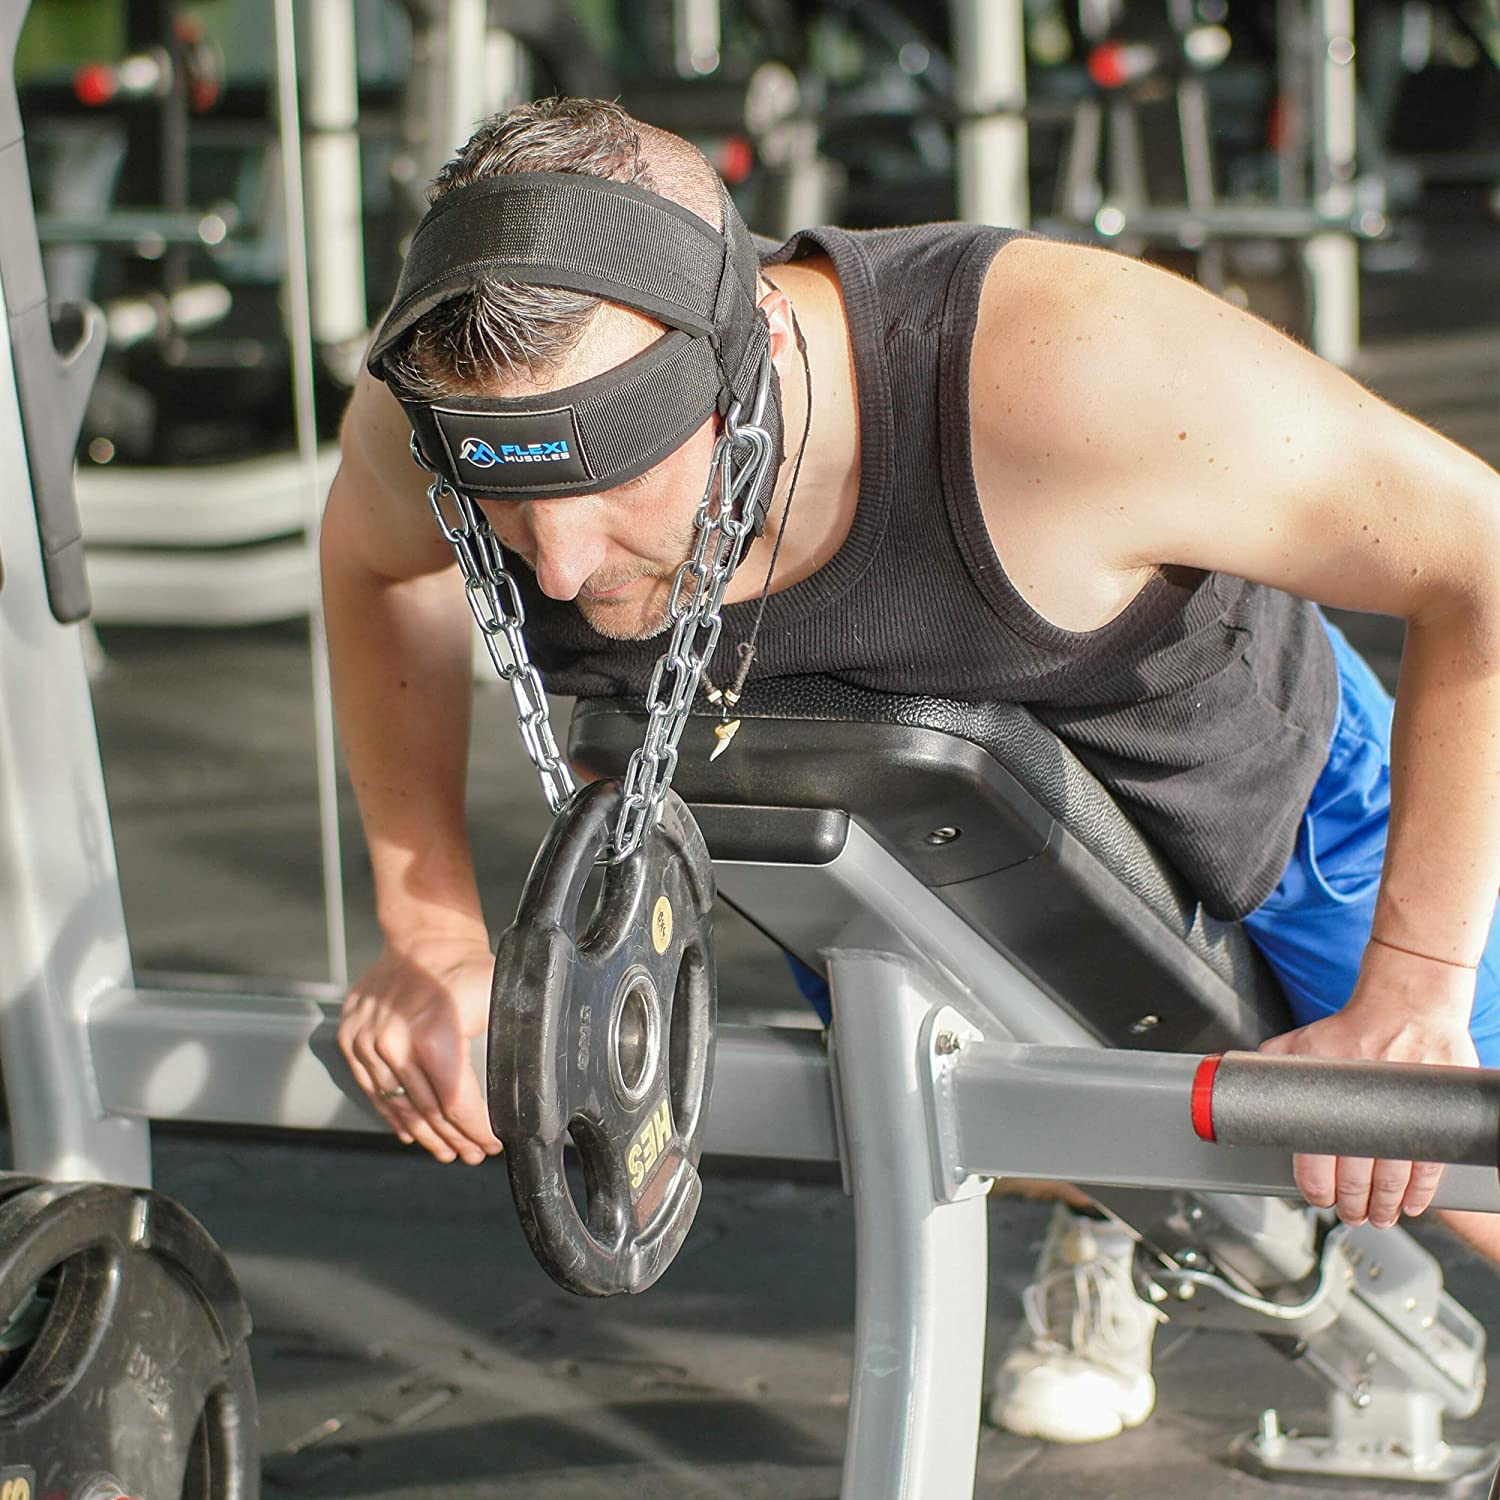 Built with Heavy Duty D-Rings and Chain to Ensure Stability and Ability to Build Muscle Strength Greatly Padded a Flexi Muscle Neck Head Harness for Strength Resistance Training and Injury Recovery